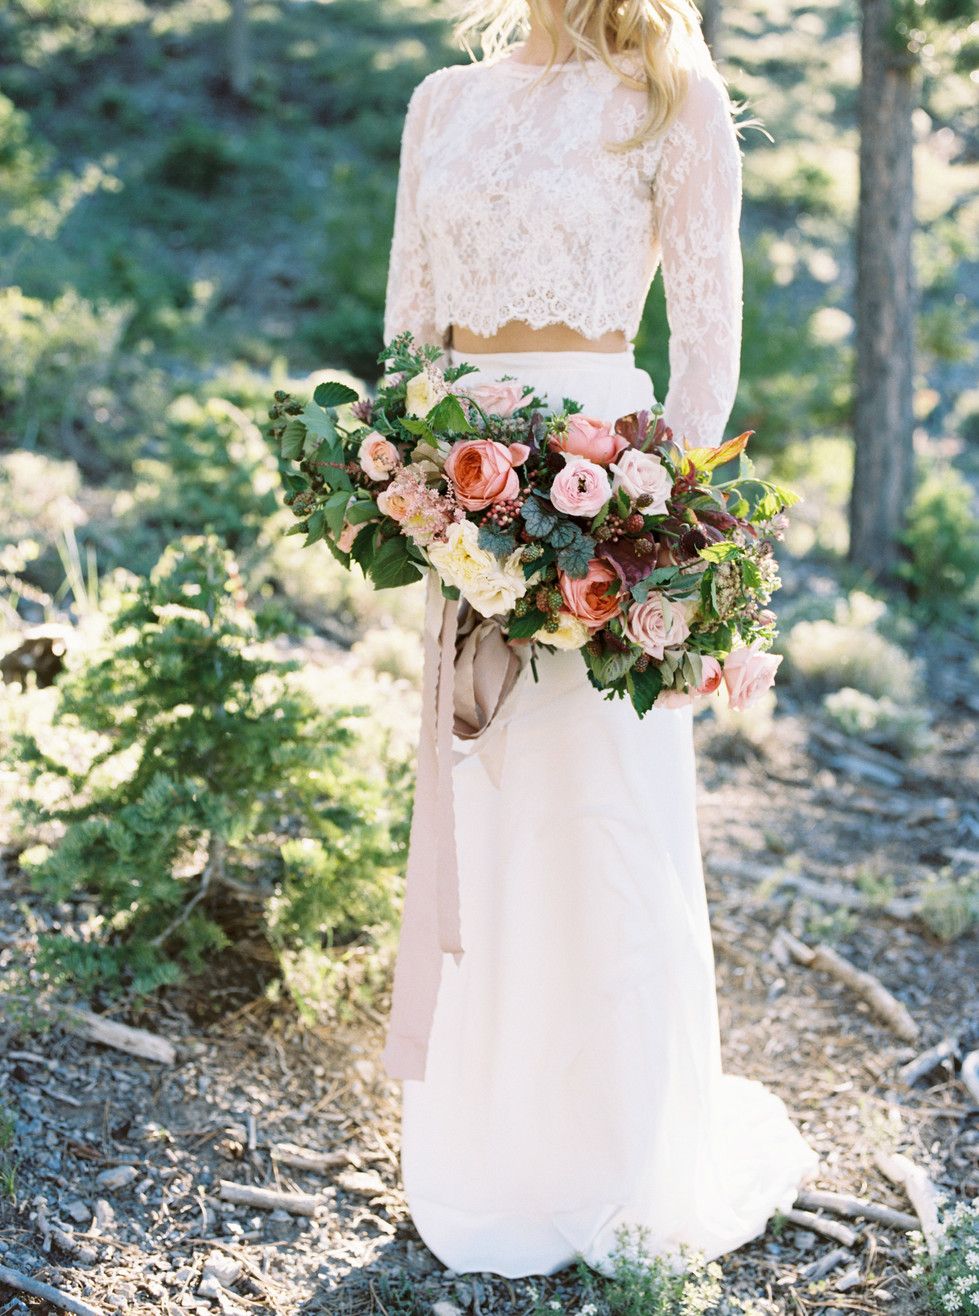 Rustic wedding bouquet with Romantic Antique roses, Patience garden roses, raspberries and garden greenery. Photo: Shannon Elizabeth